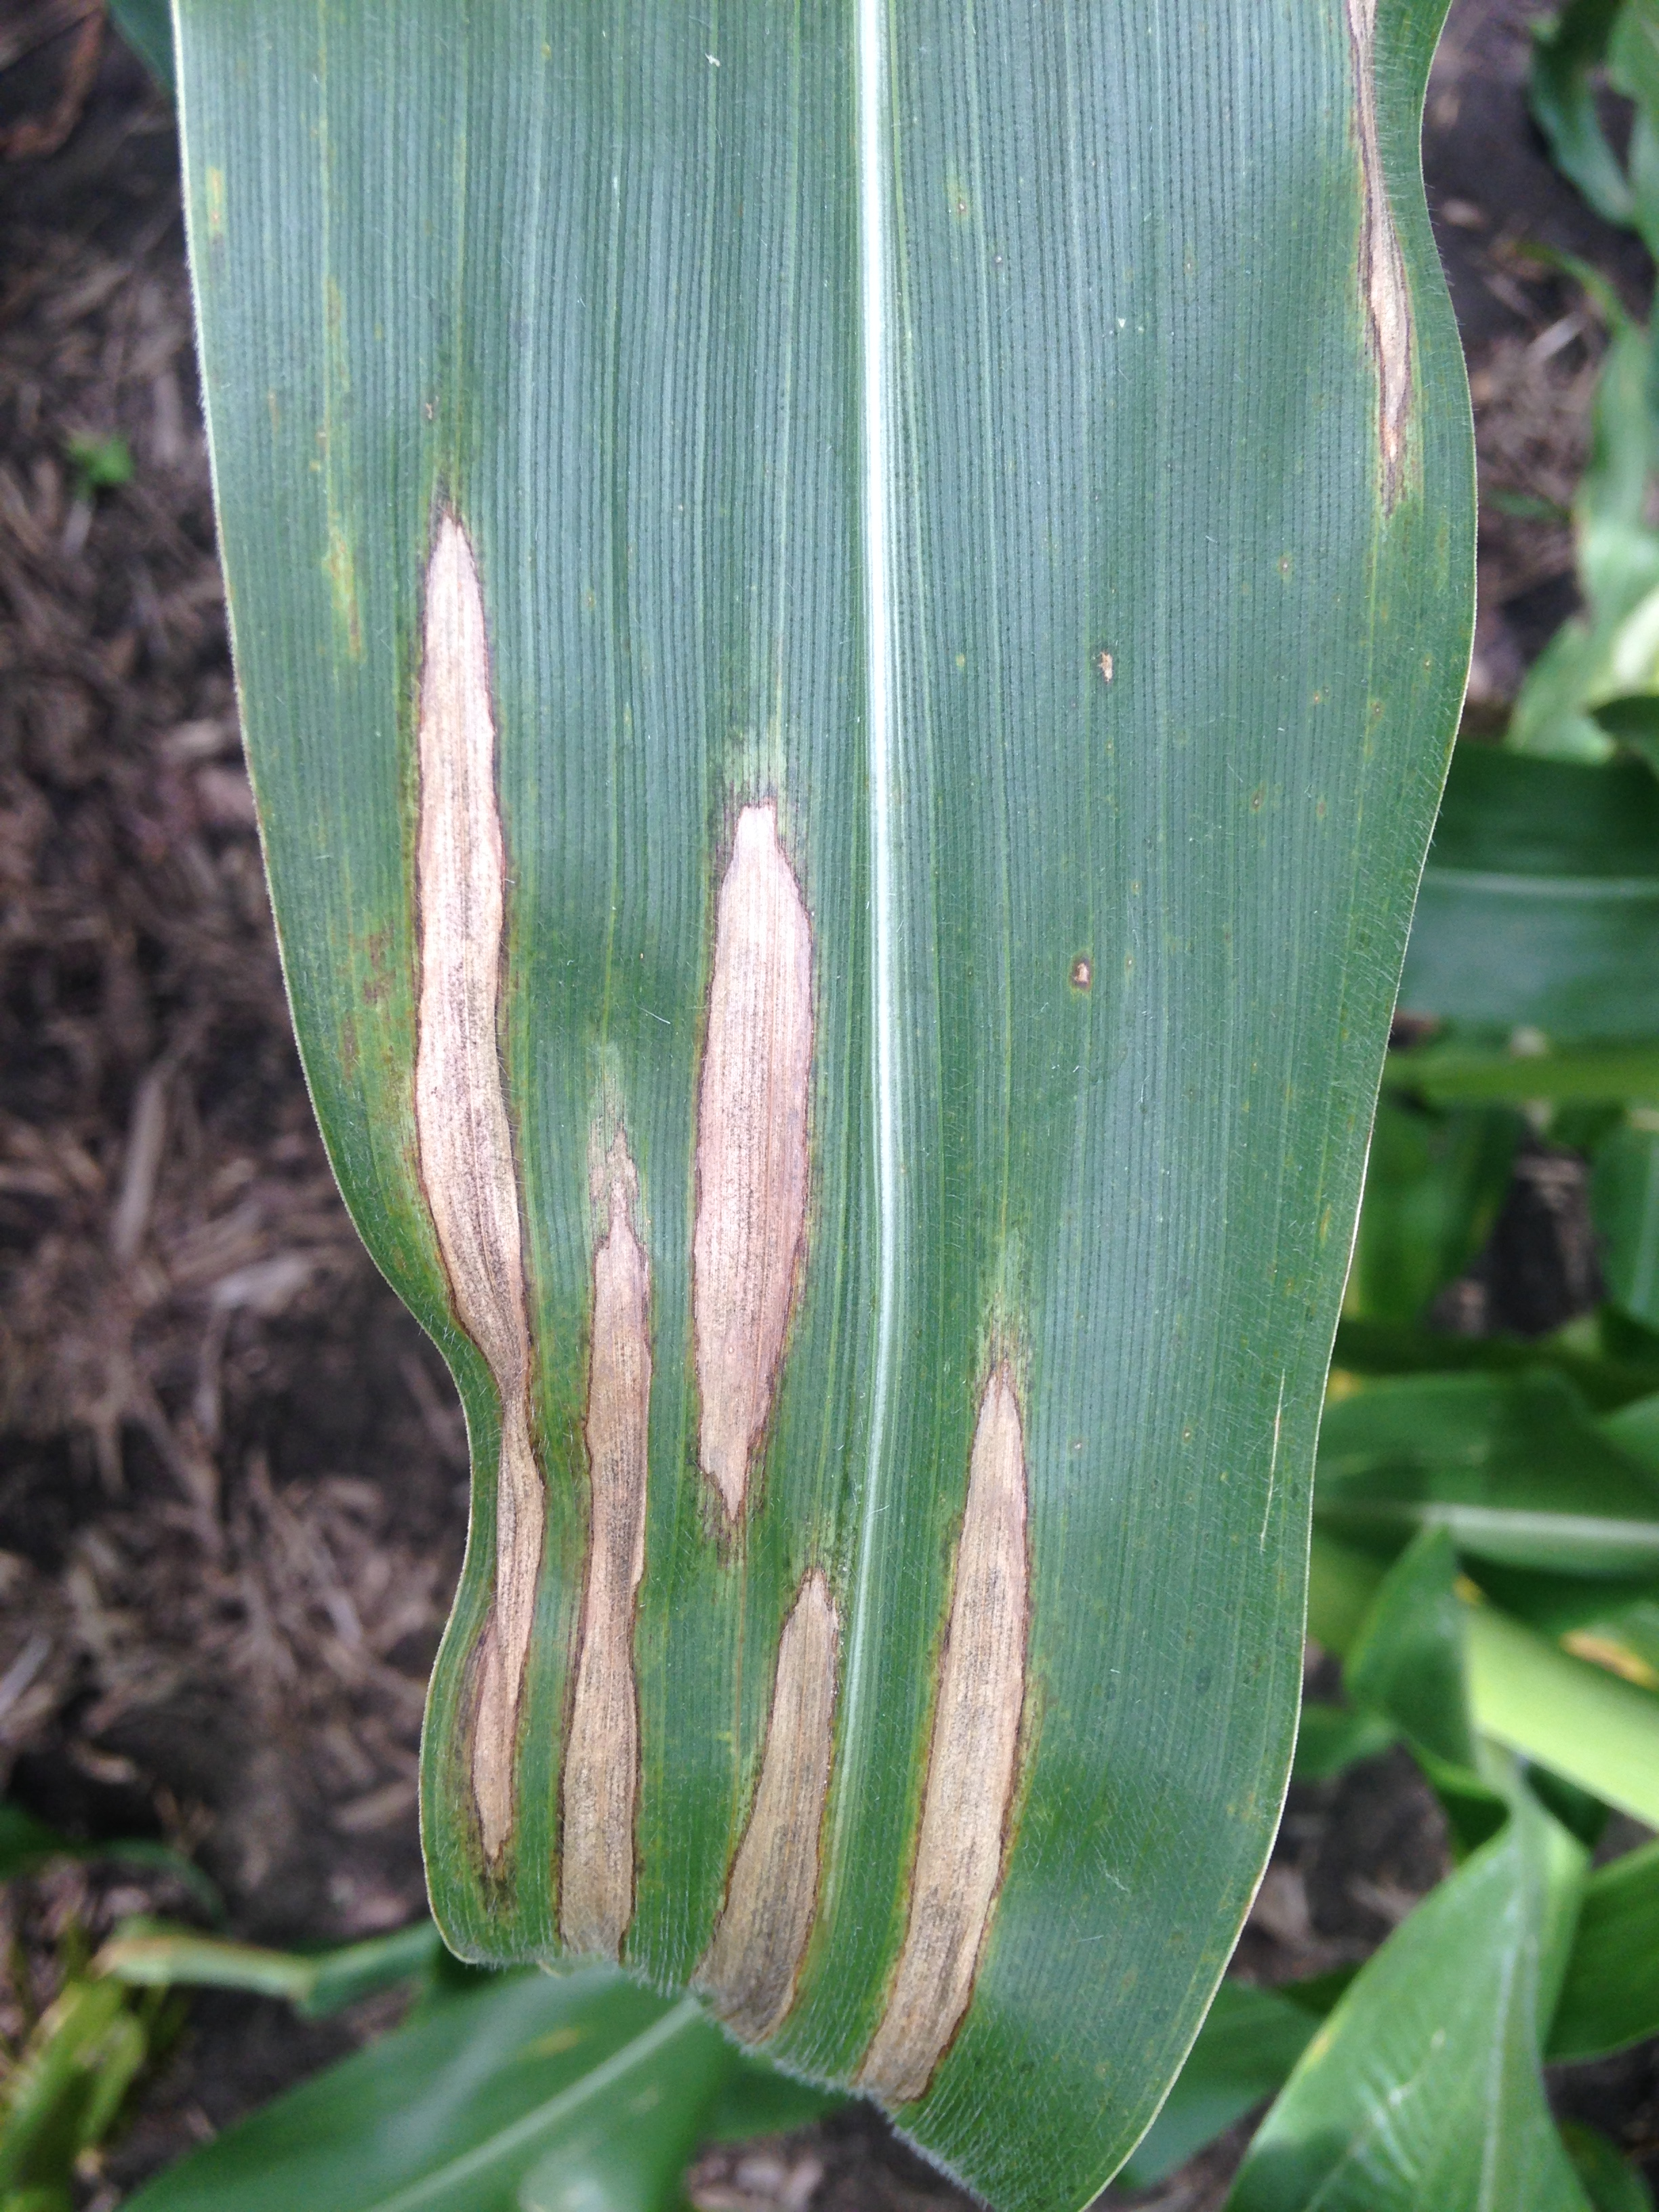 Northern corn leaf blight lesions on corn leaf.